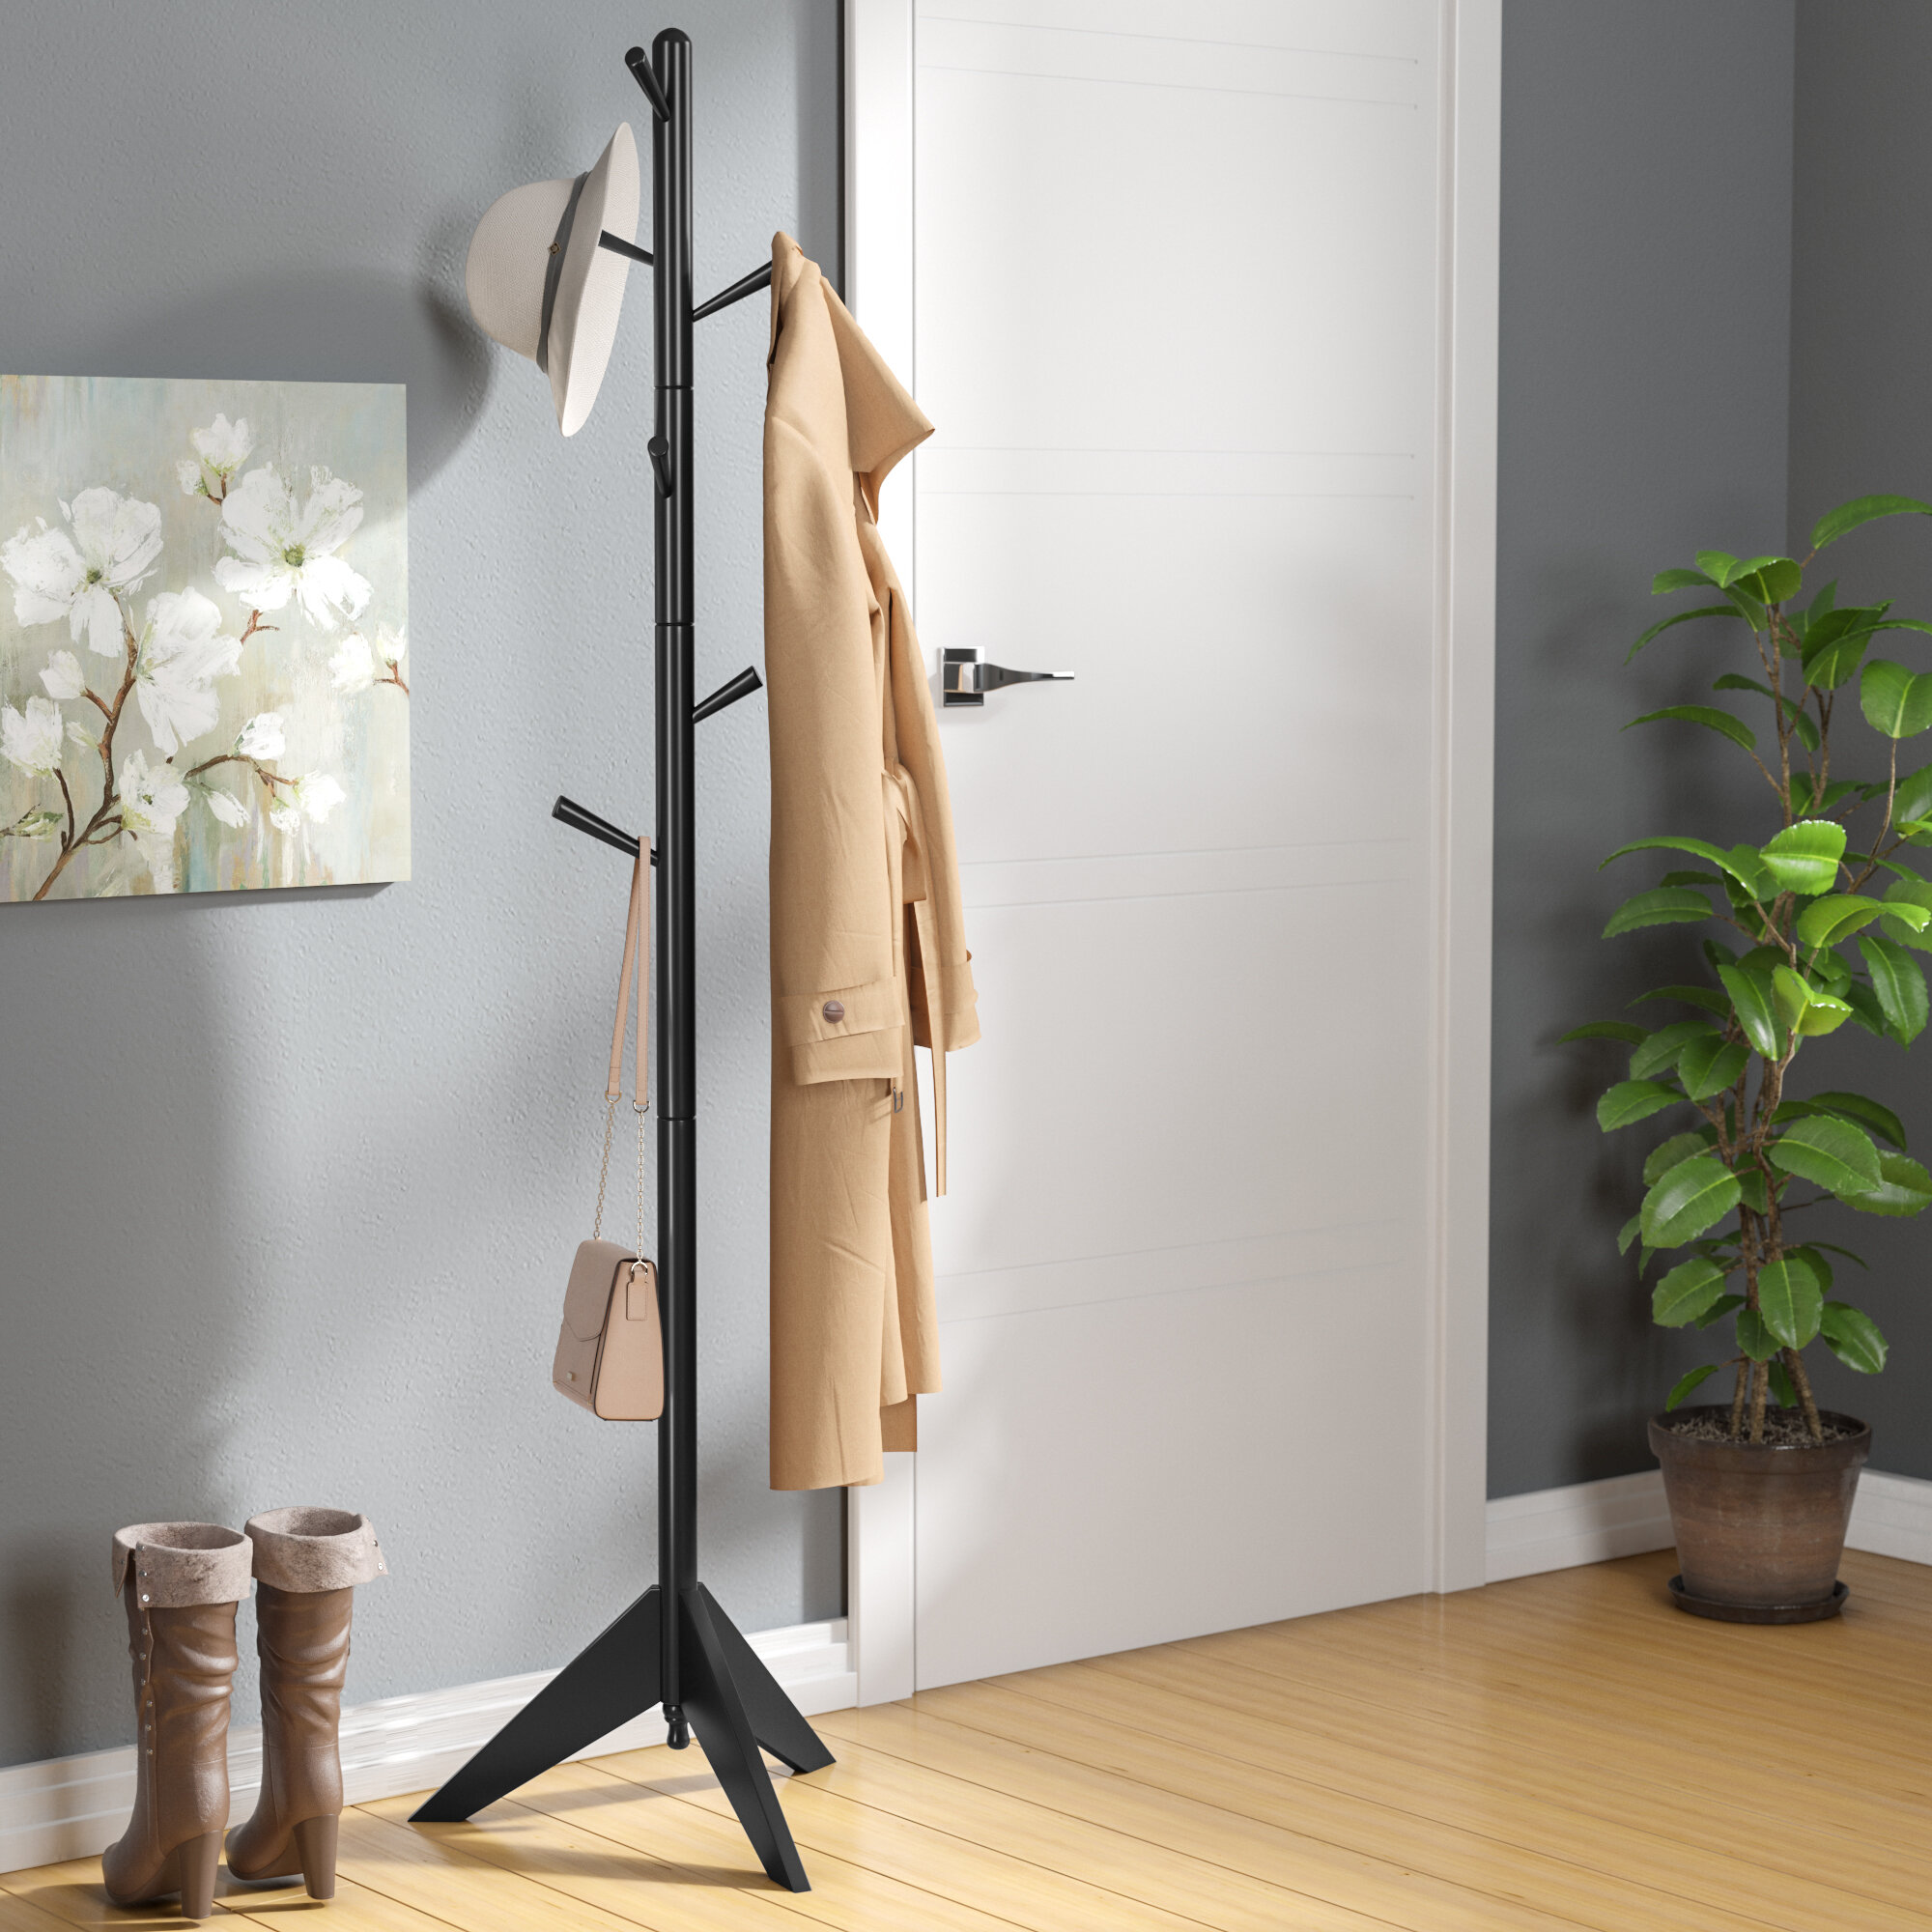 standing heavy com manufacturers free and garment duty on cn suppliers countrysearch closet clothes rack china alibaba